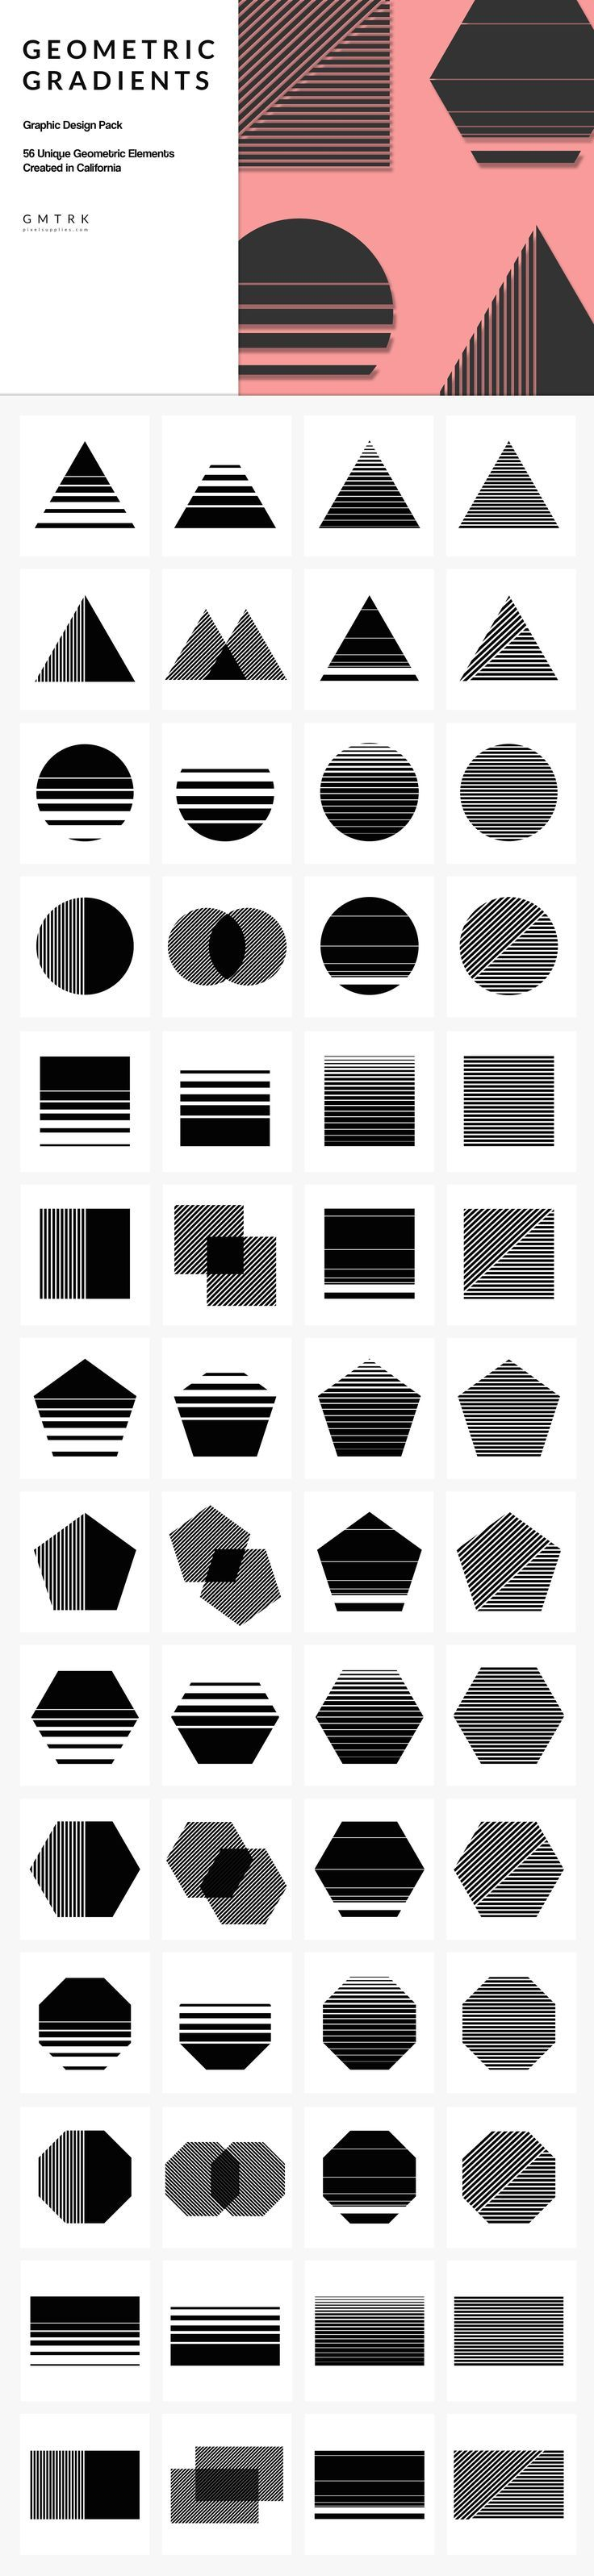 Geometric Gradients by Pixel Supplies on /creativemarket/